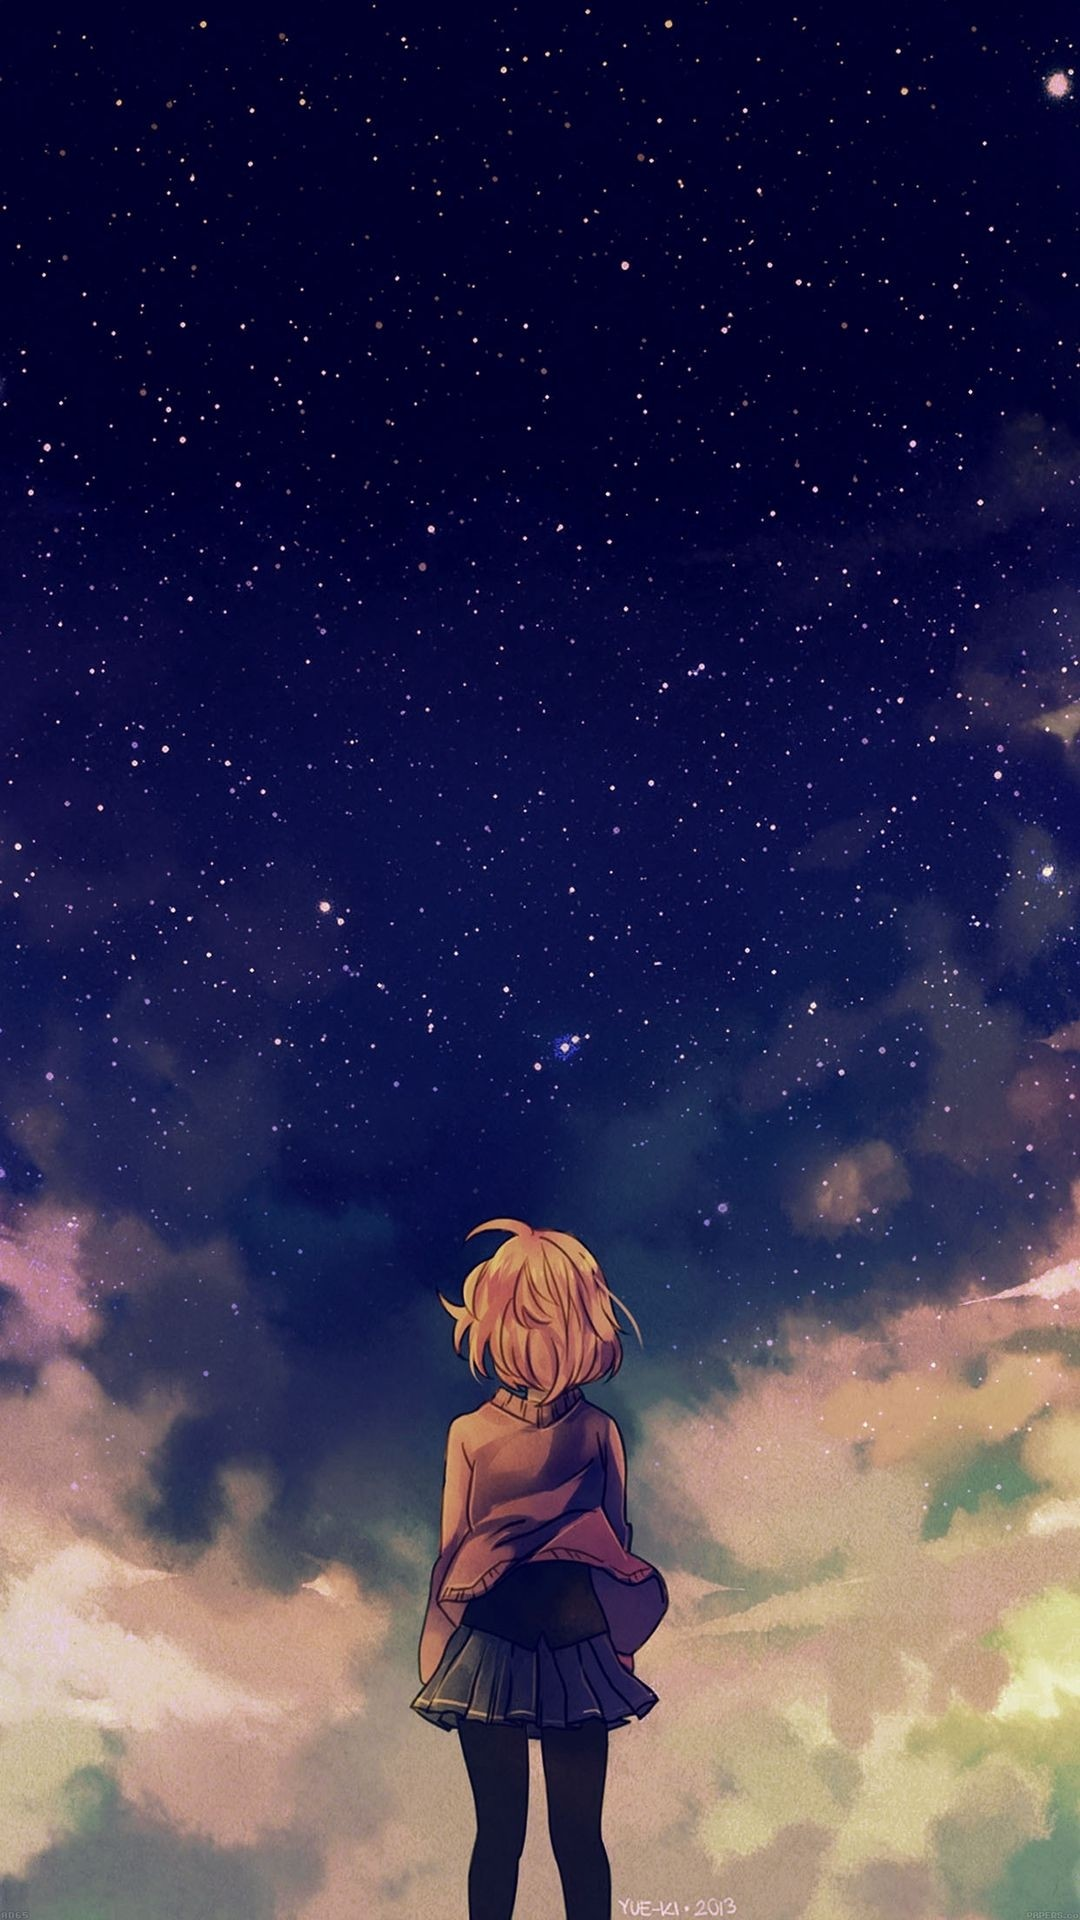 Res: 1080x1920, Best of Sad Anime Wallpaper iPhone Download - Starry Space Illust Anime  Girl iPhone 6 wallpaper